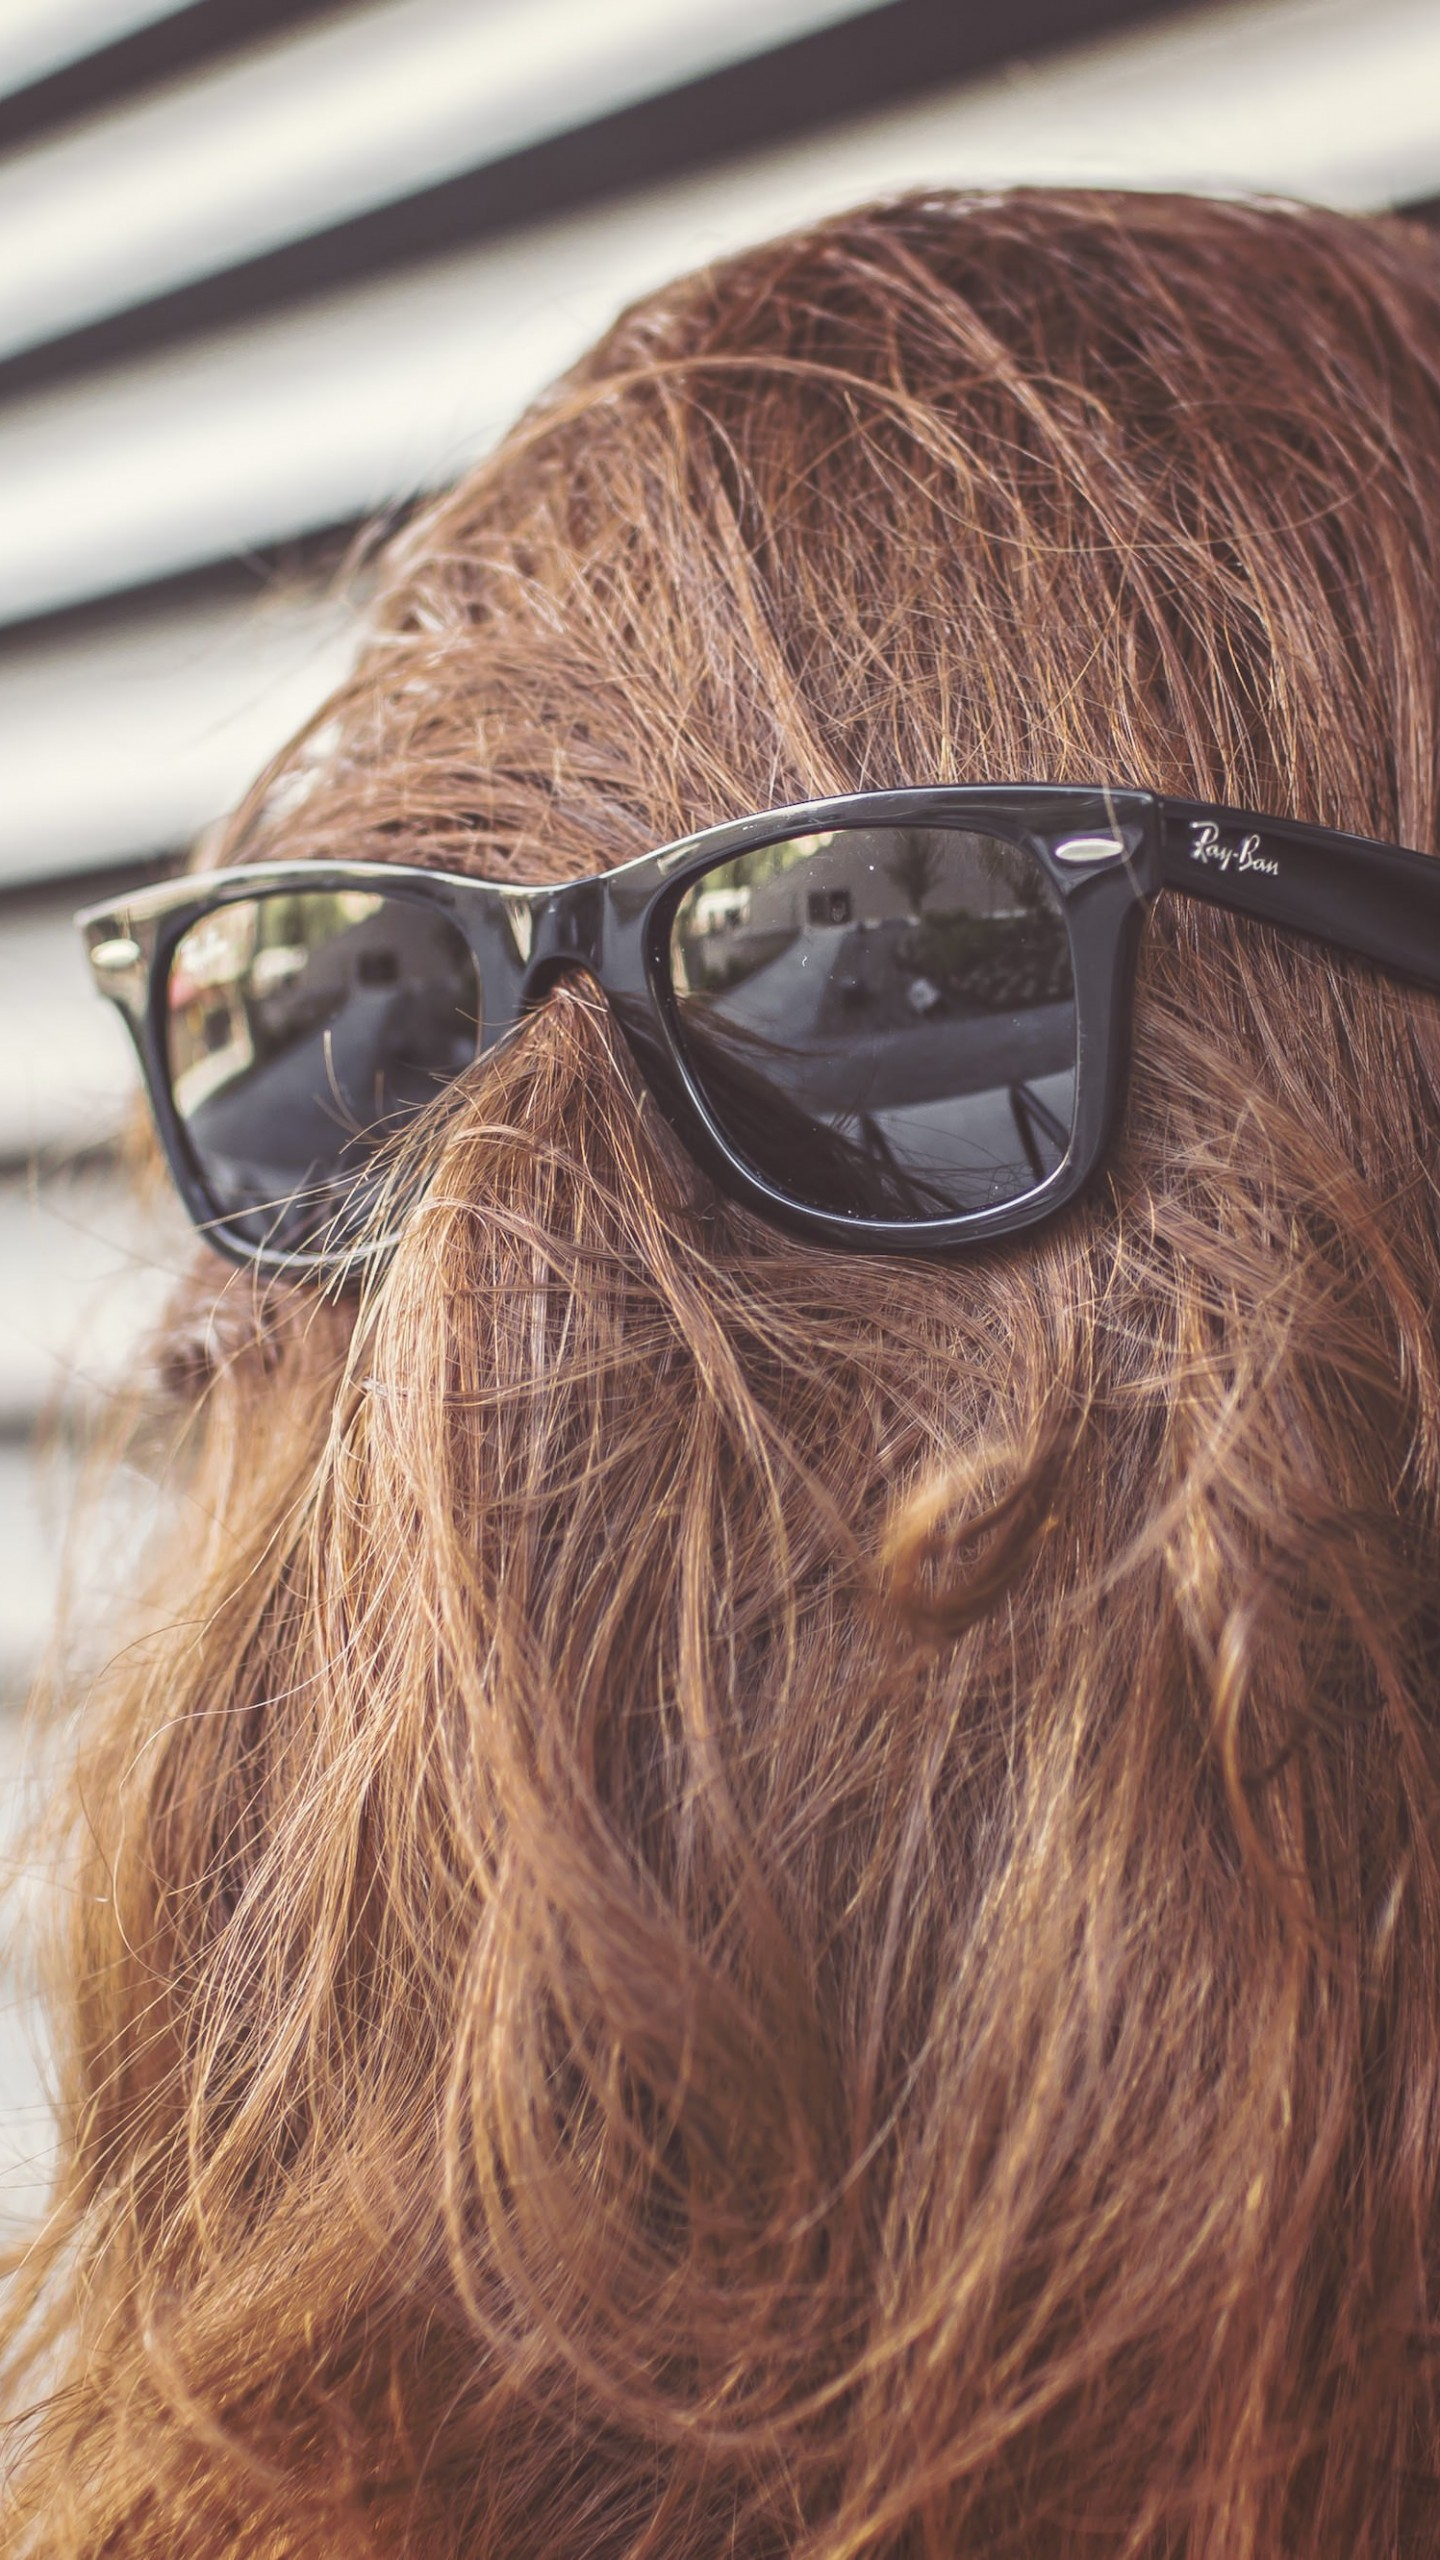 Chewbacca Girl Wallpaper for SAMSUNG Galaxy Note 4